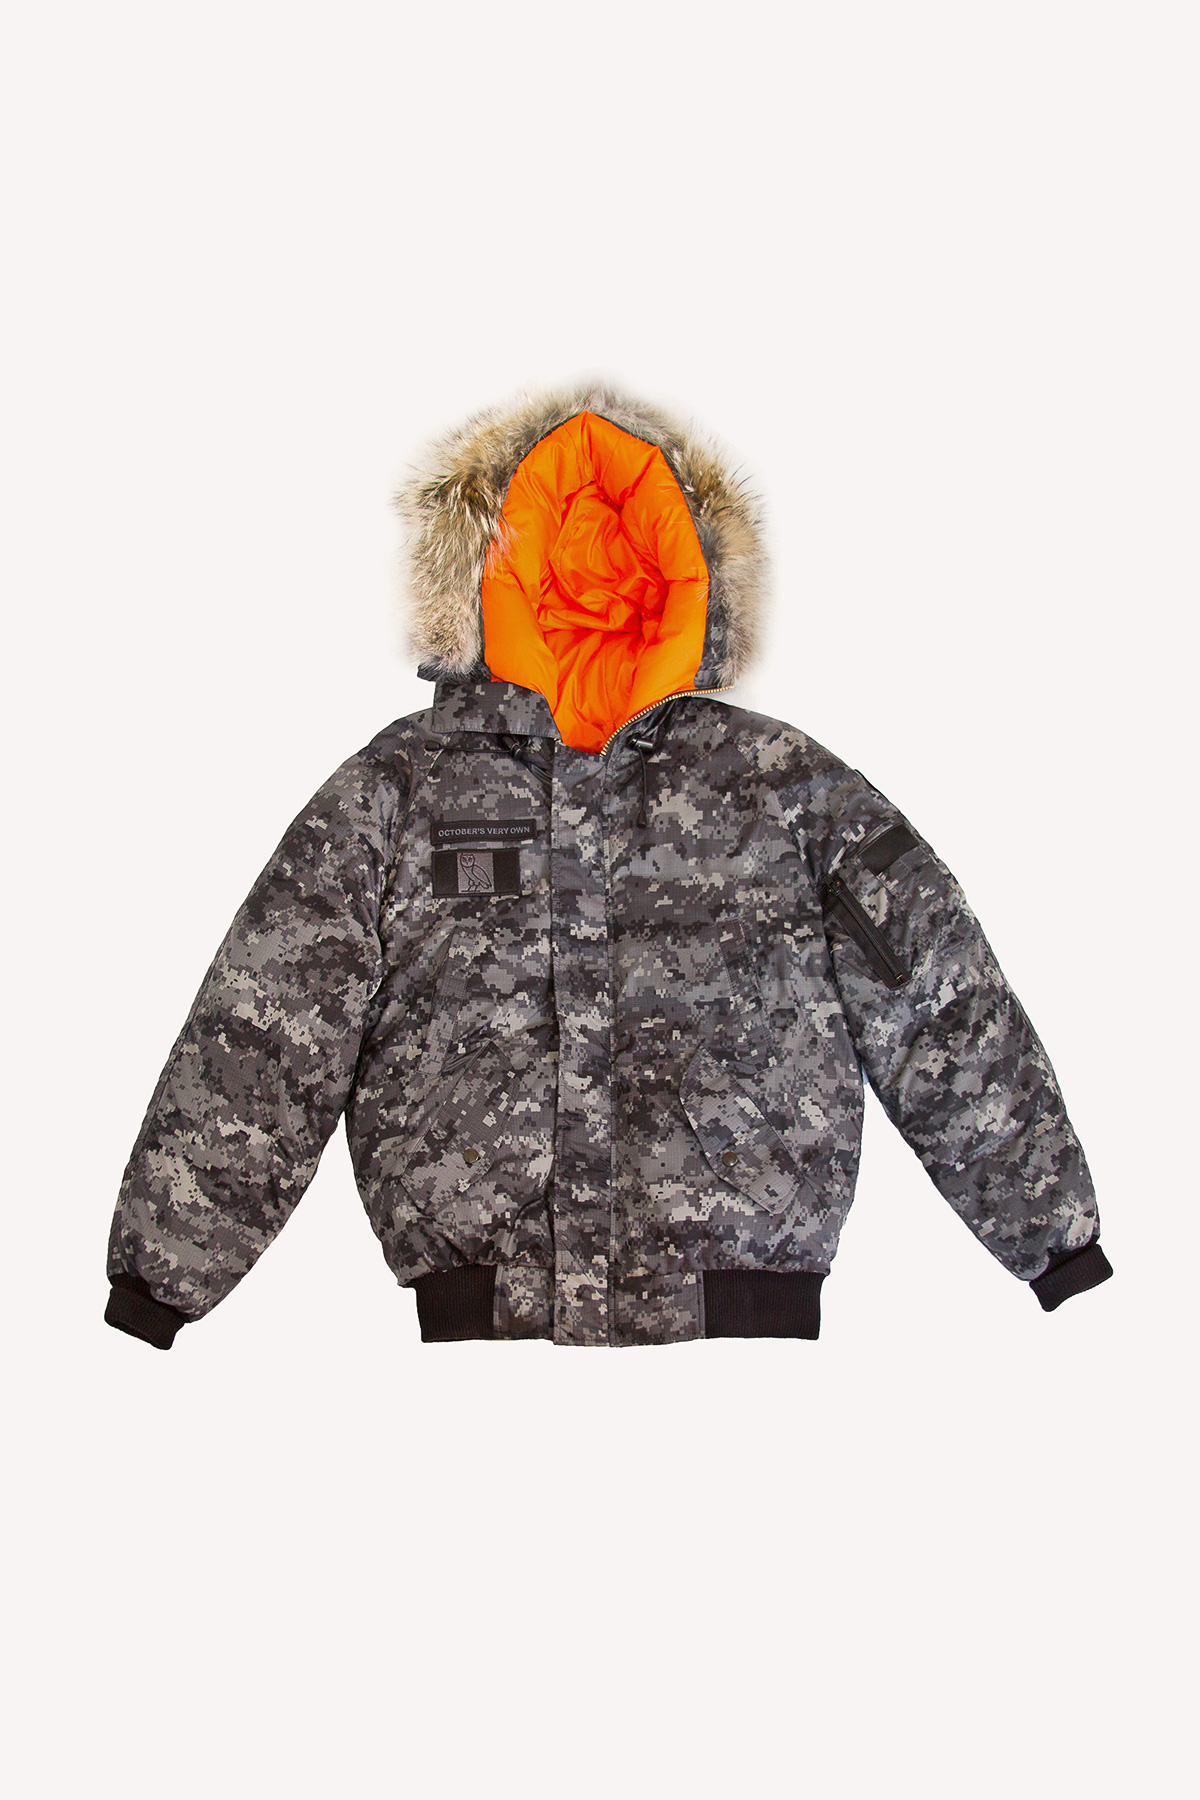 Canada Goose langford parka online discounts - Canada Goose x October's Very Own OVO Chilliwack Bomber Jacket ...